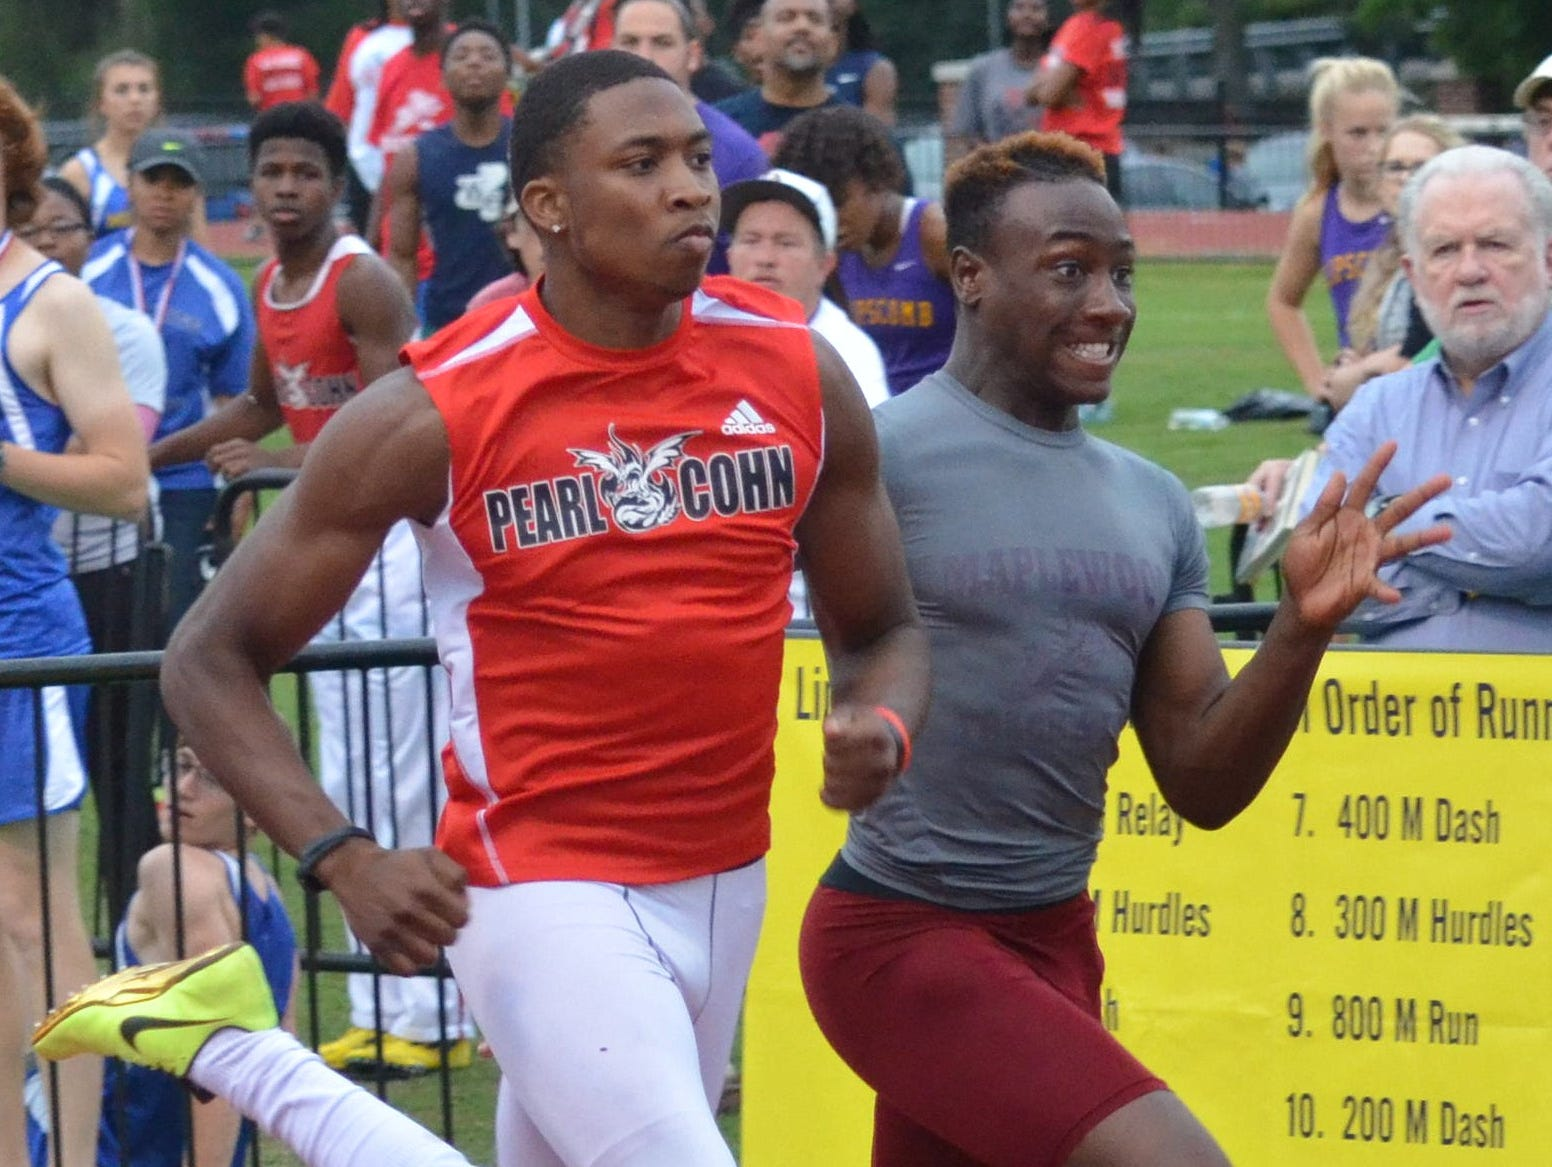 Pearl-Cohn senior Cameron Watkins, left, won the 100-meter dash Thursday in 10.94 seconds, edging Maplewood's Corey Simmons by two one-hundredths of a second.